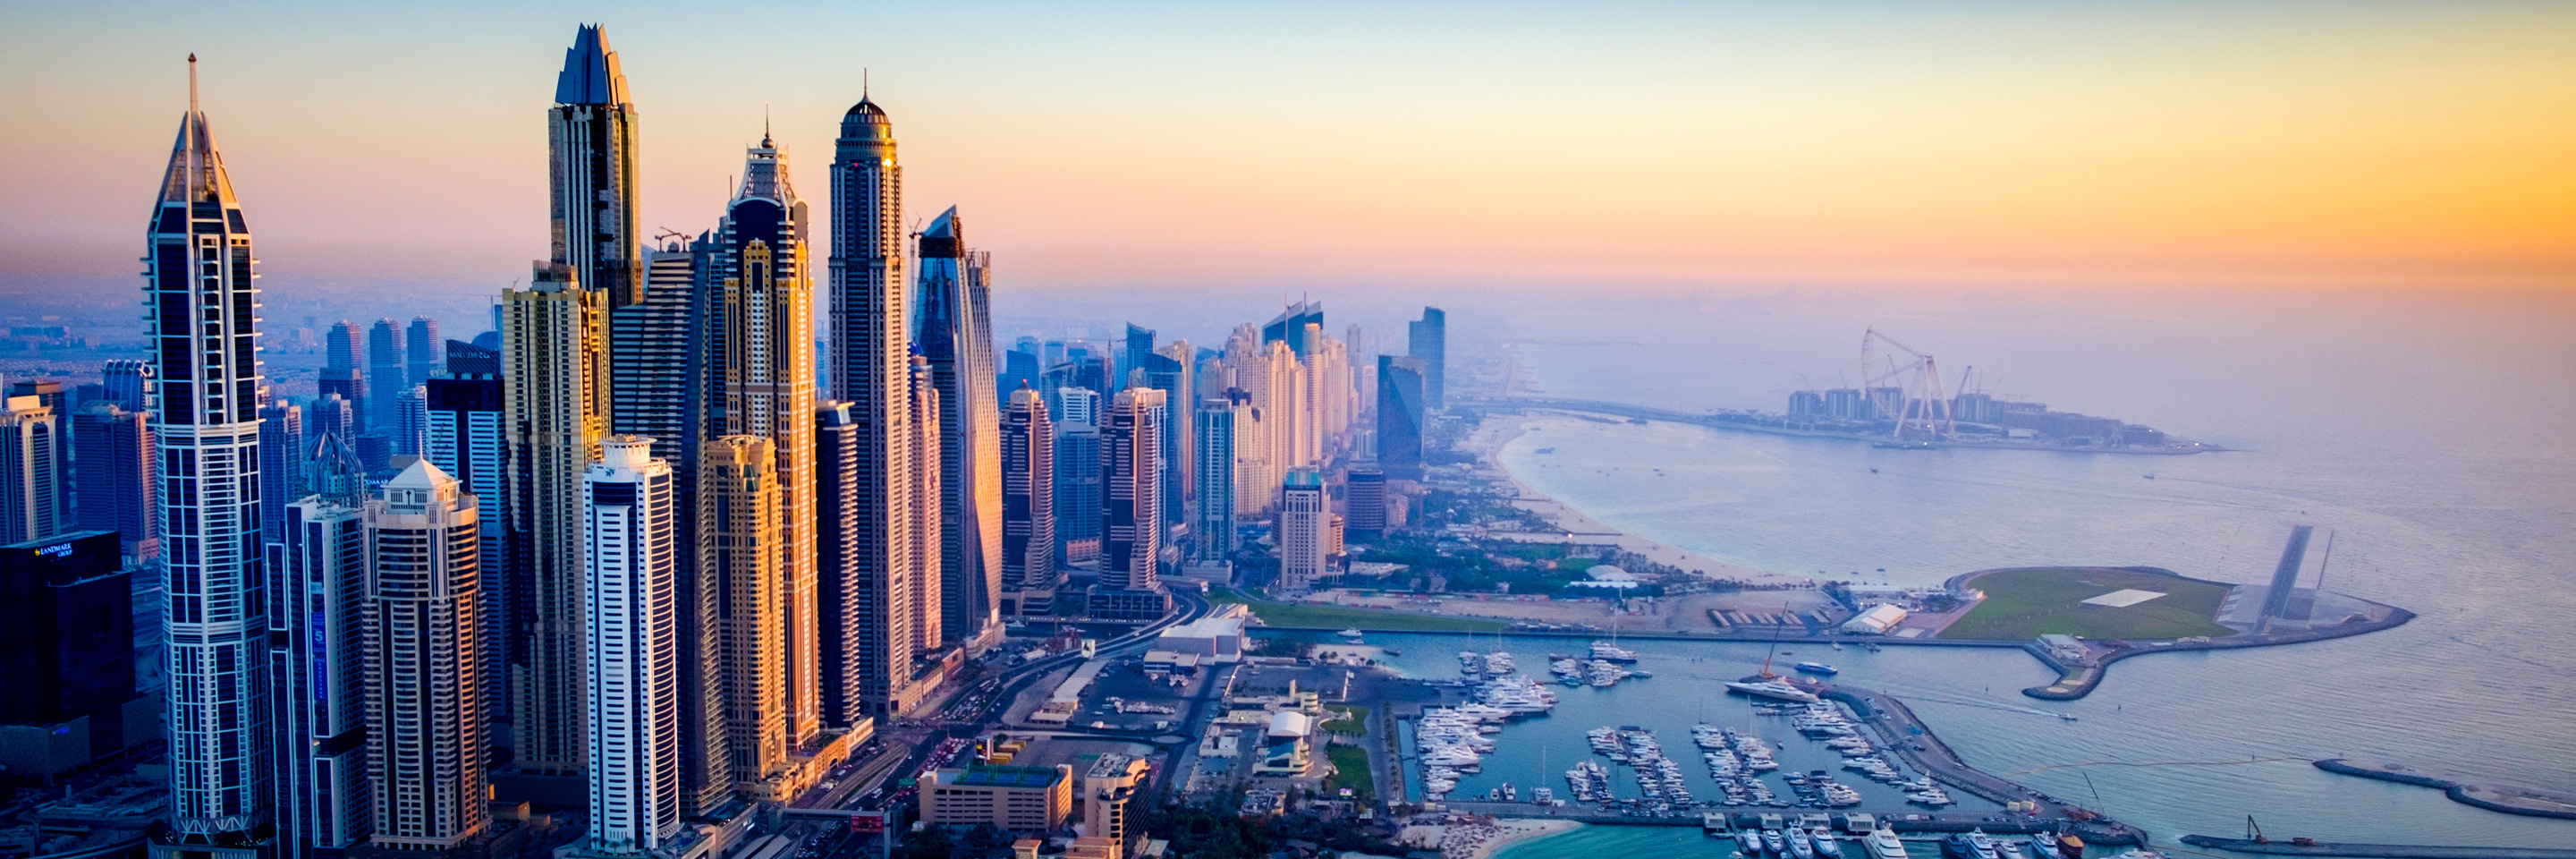 Most Popular Home Plans Dubai Plans To Be World S No 1 Tourist Destination Within